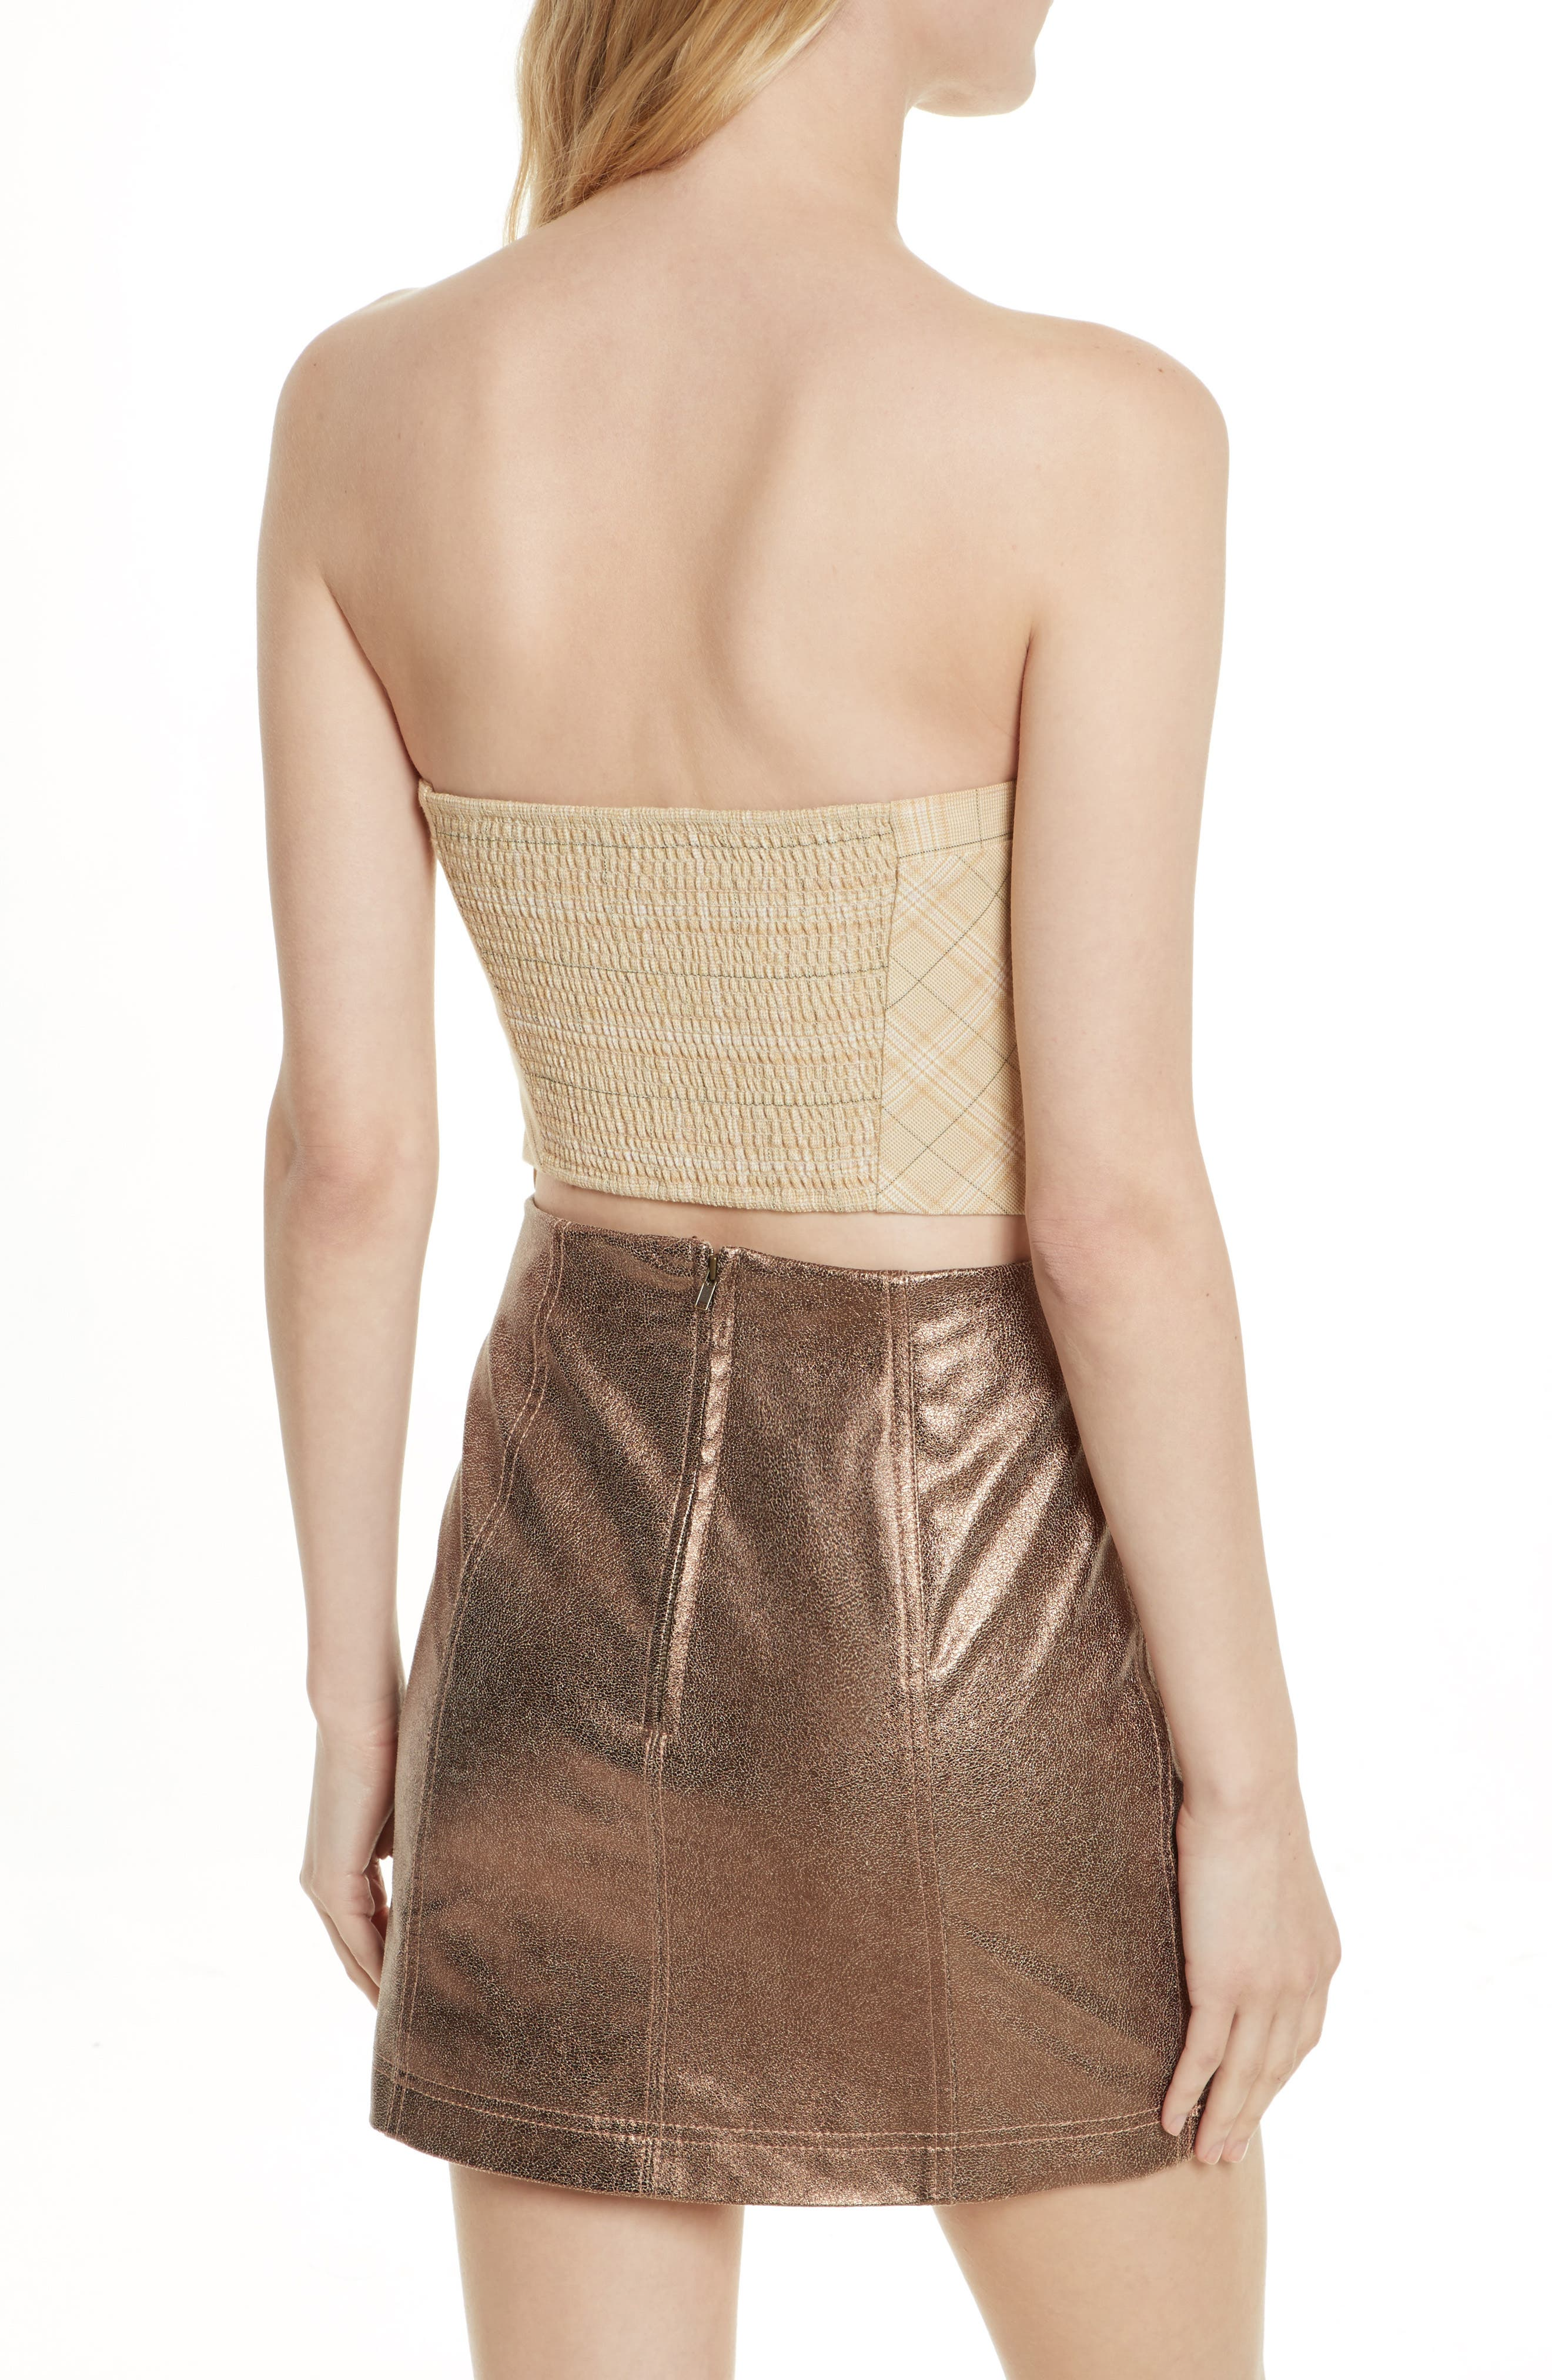 Out West Corset Top,                             Alternate thumbnail 3, color,                             Taupe